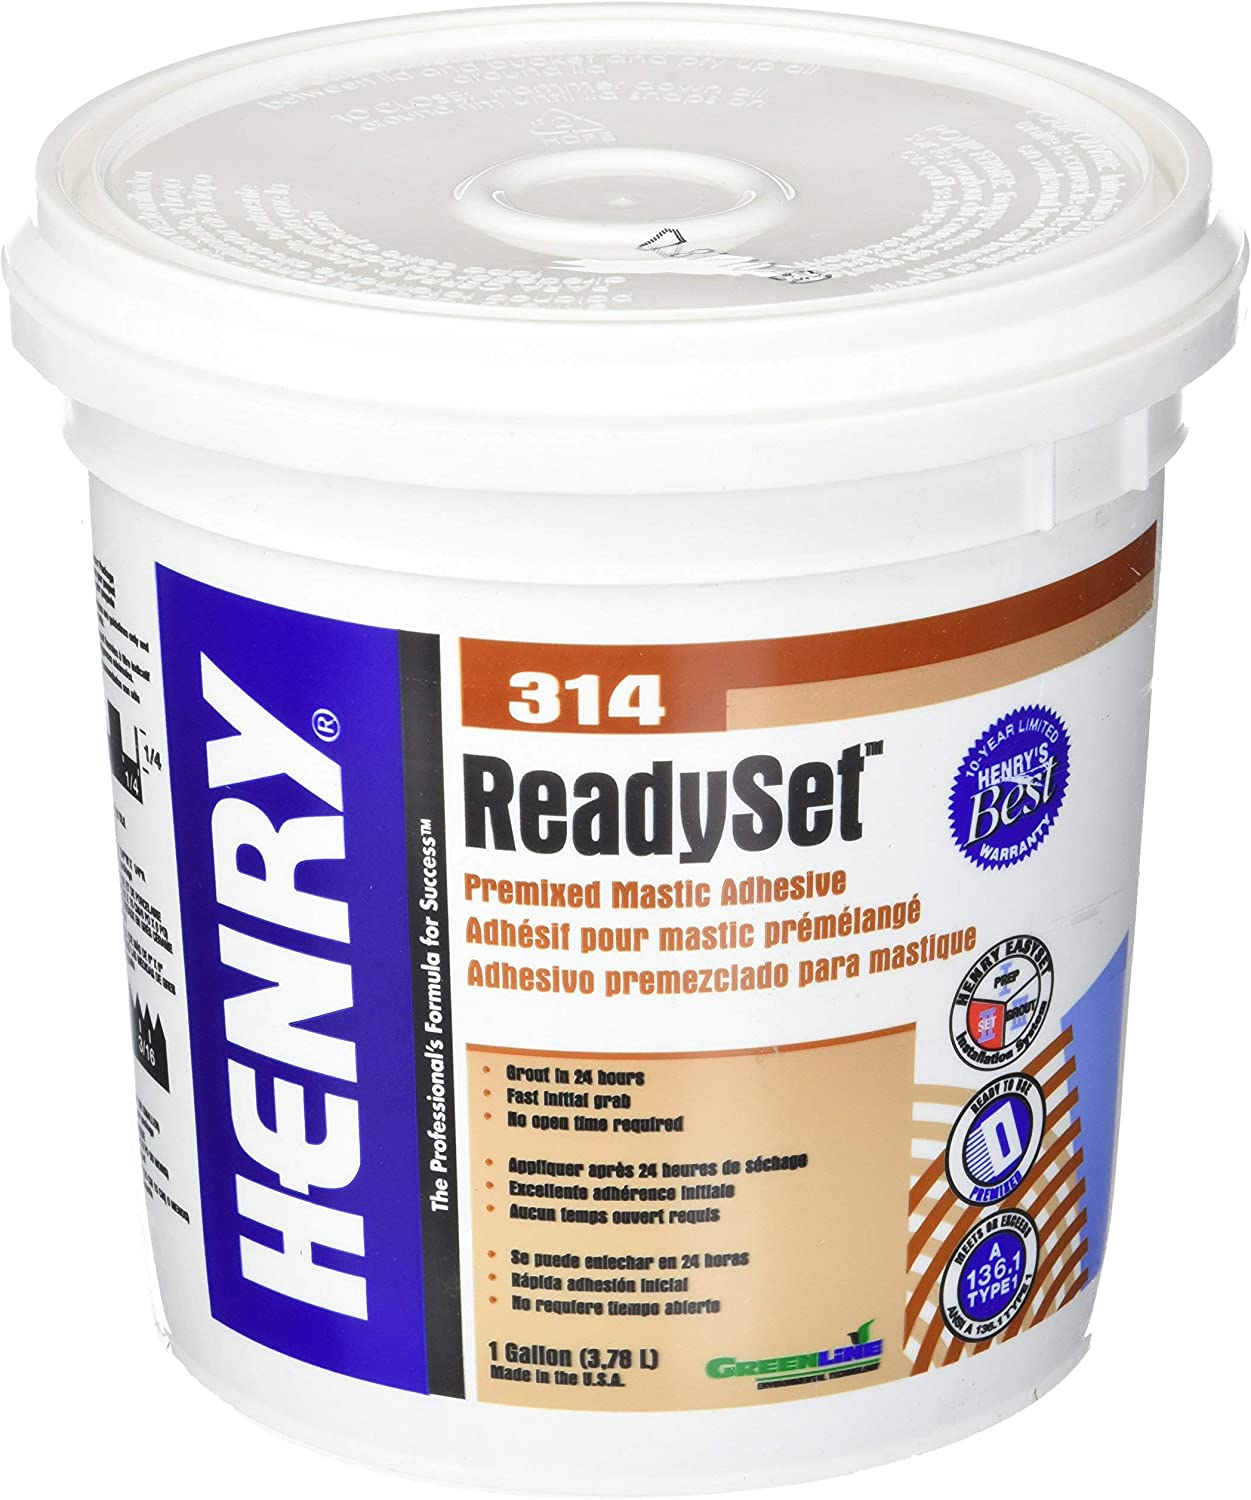 3 Save money Set 12256 GAL #314 Cera Adhesive WW Of Henry Ranking integrated 1st place 1 gal Company